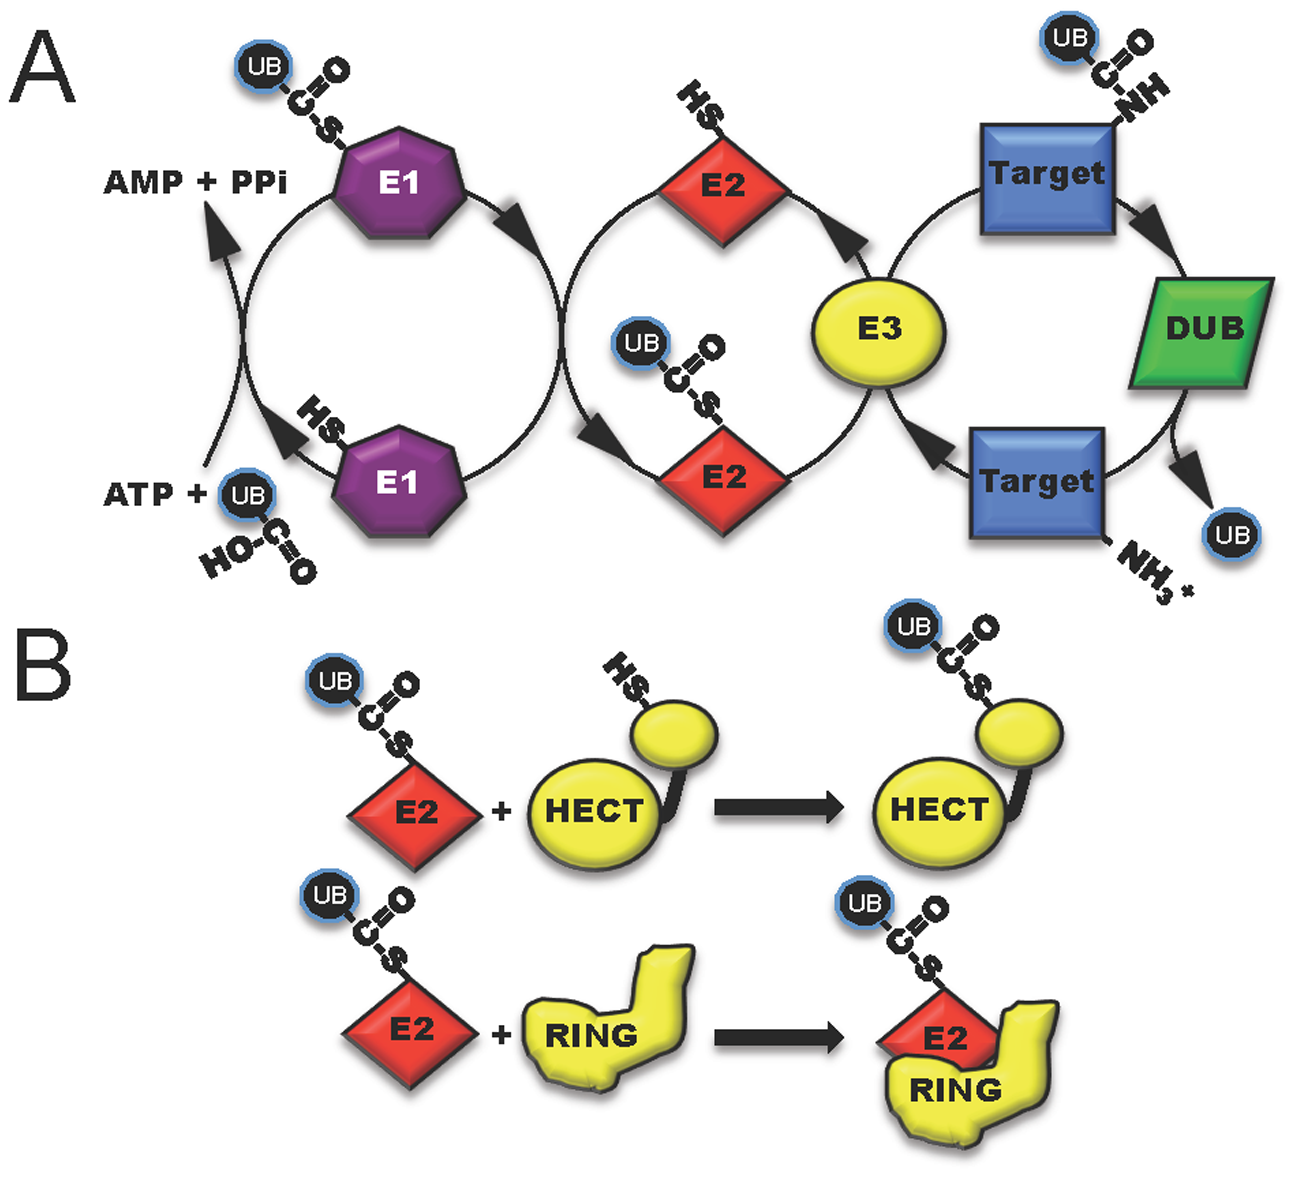 The three classes of host enzymes (E1, purple; E2, red; E3, yellow) involved in ubiquitin modification of target host proteins.